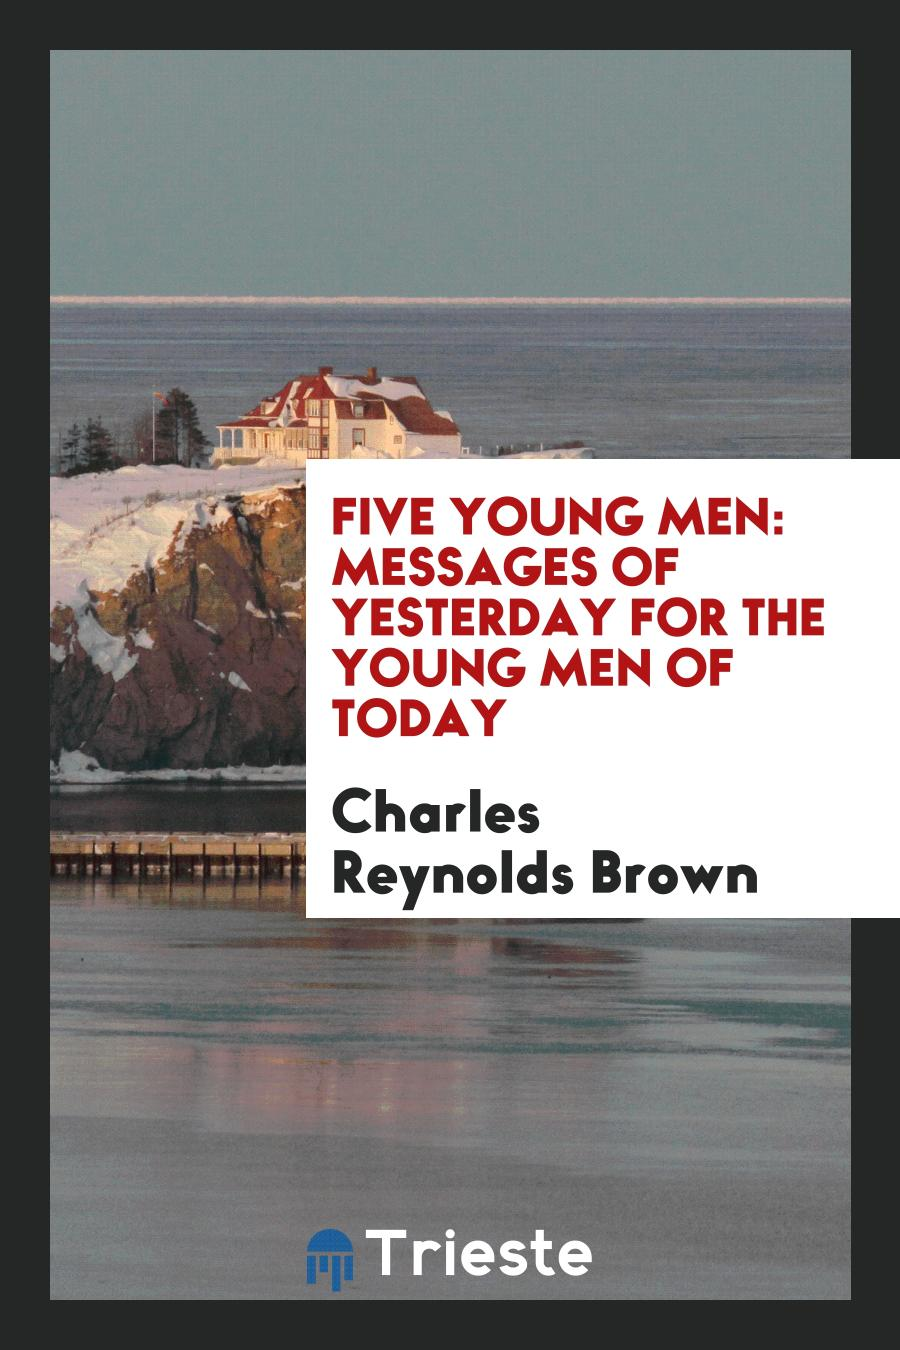 Five Young Men: Messages of Yesterday for the Young Men of Today